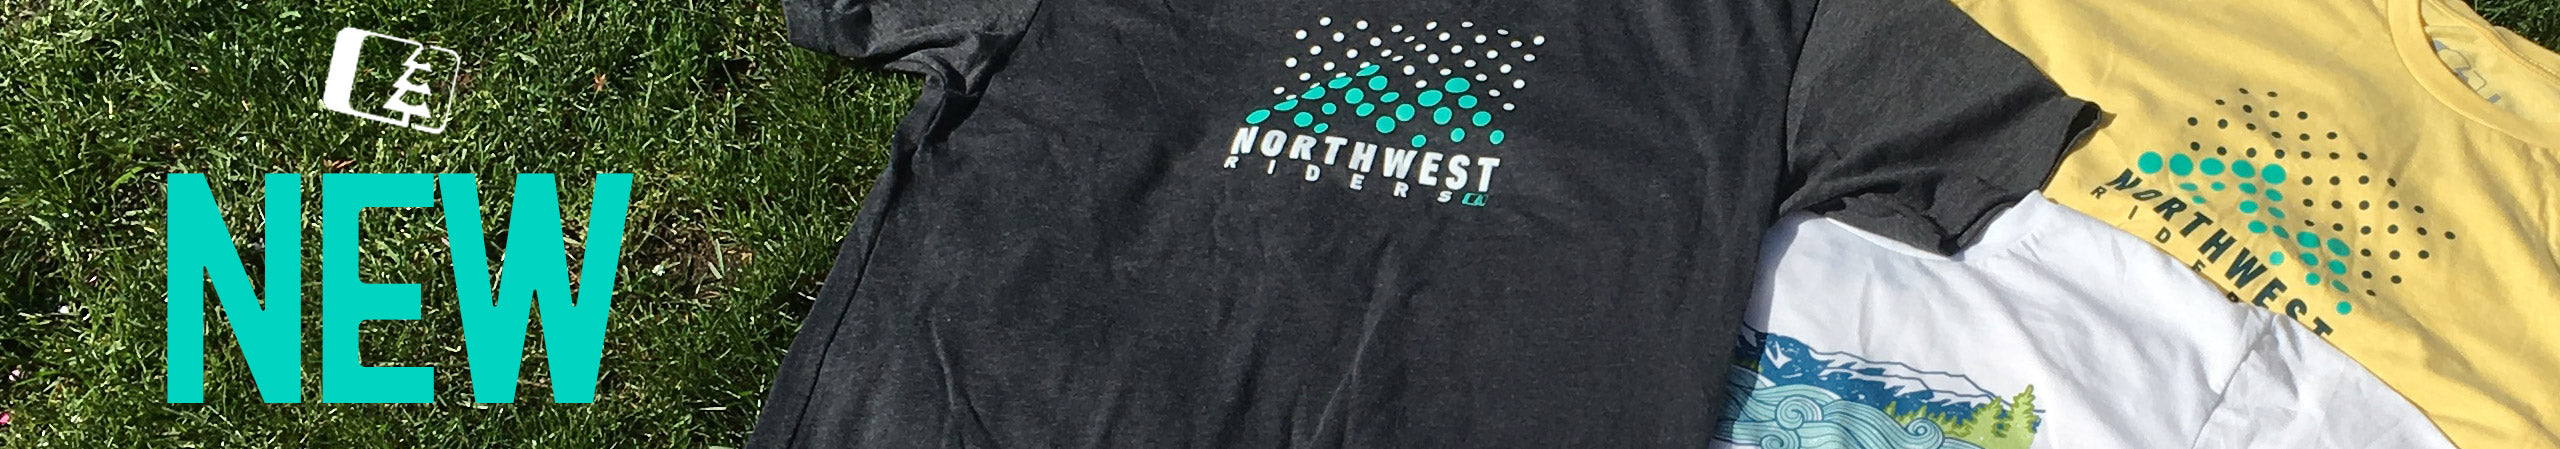 New PNW clothing from Northwest Riders